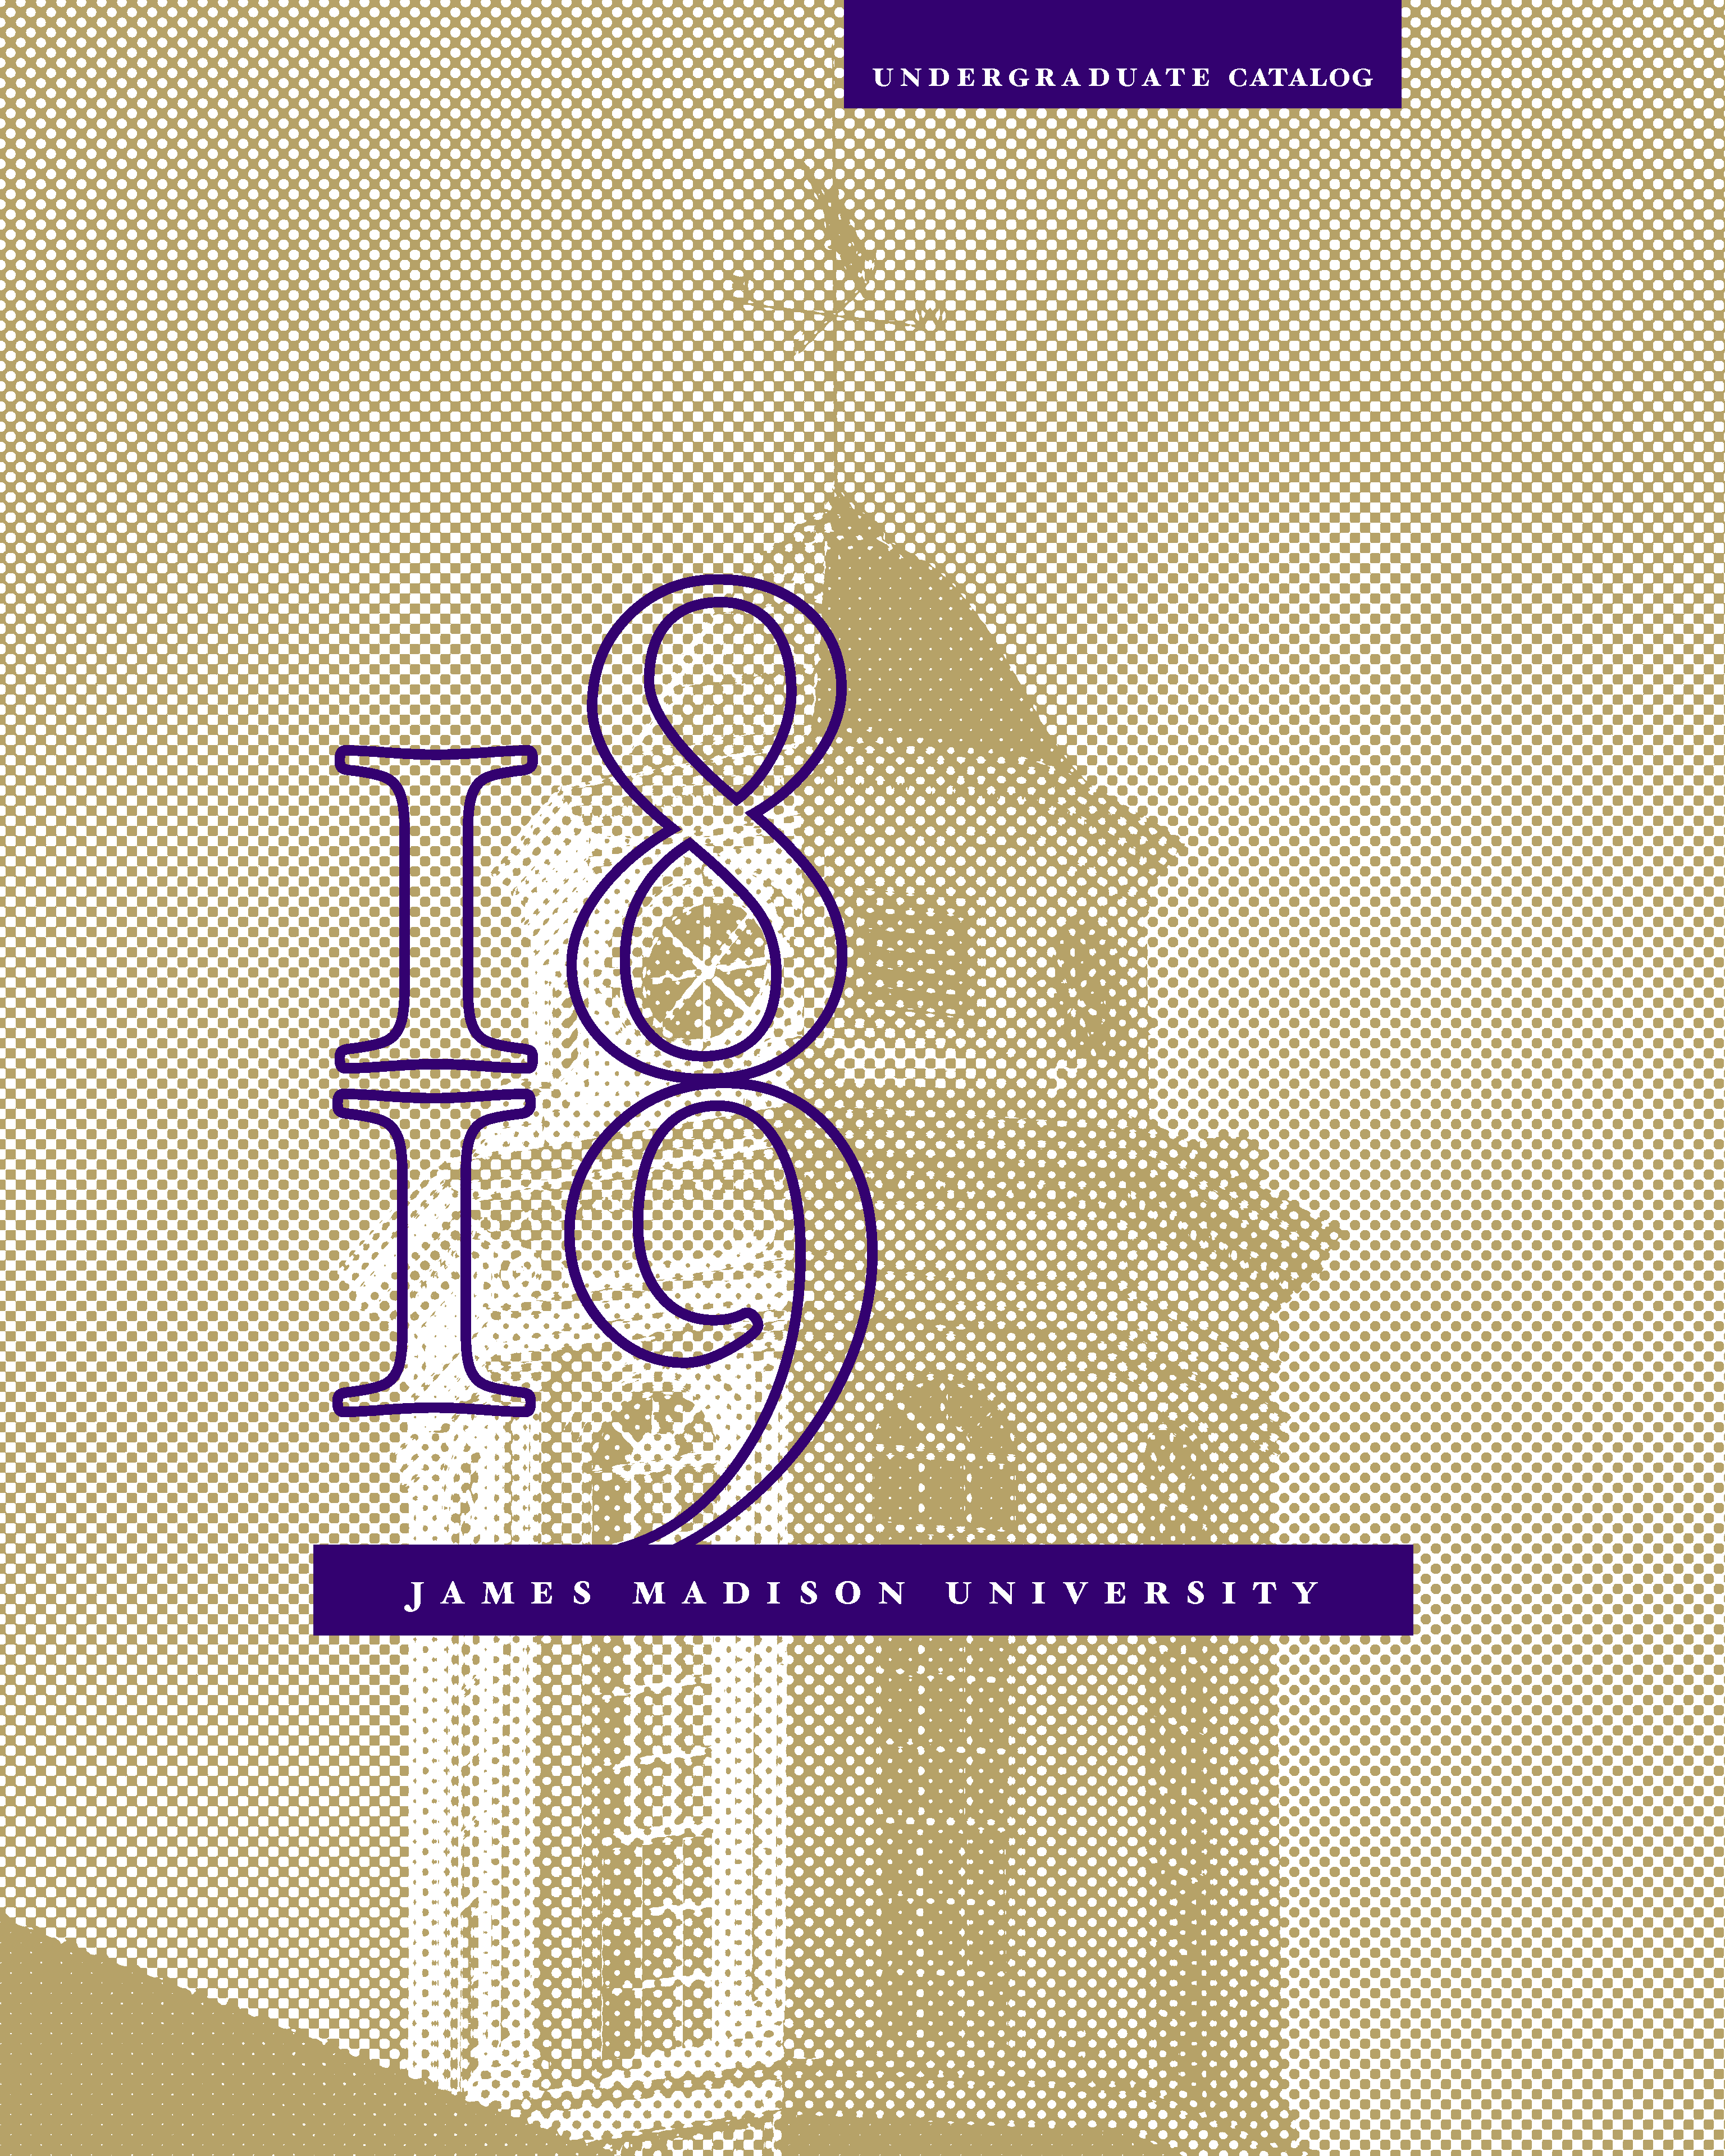 2018-2019 Undergraduate Catalog Cover